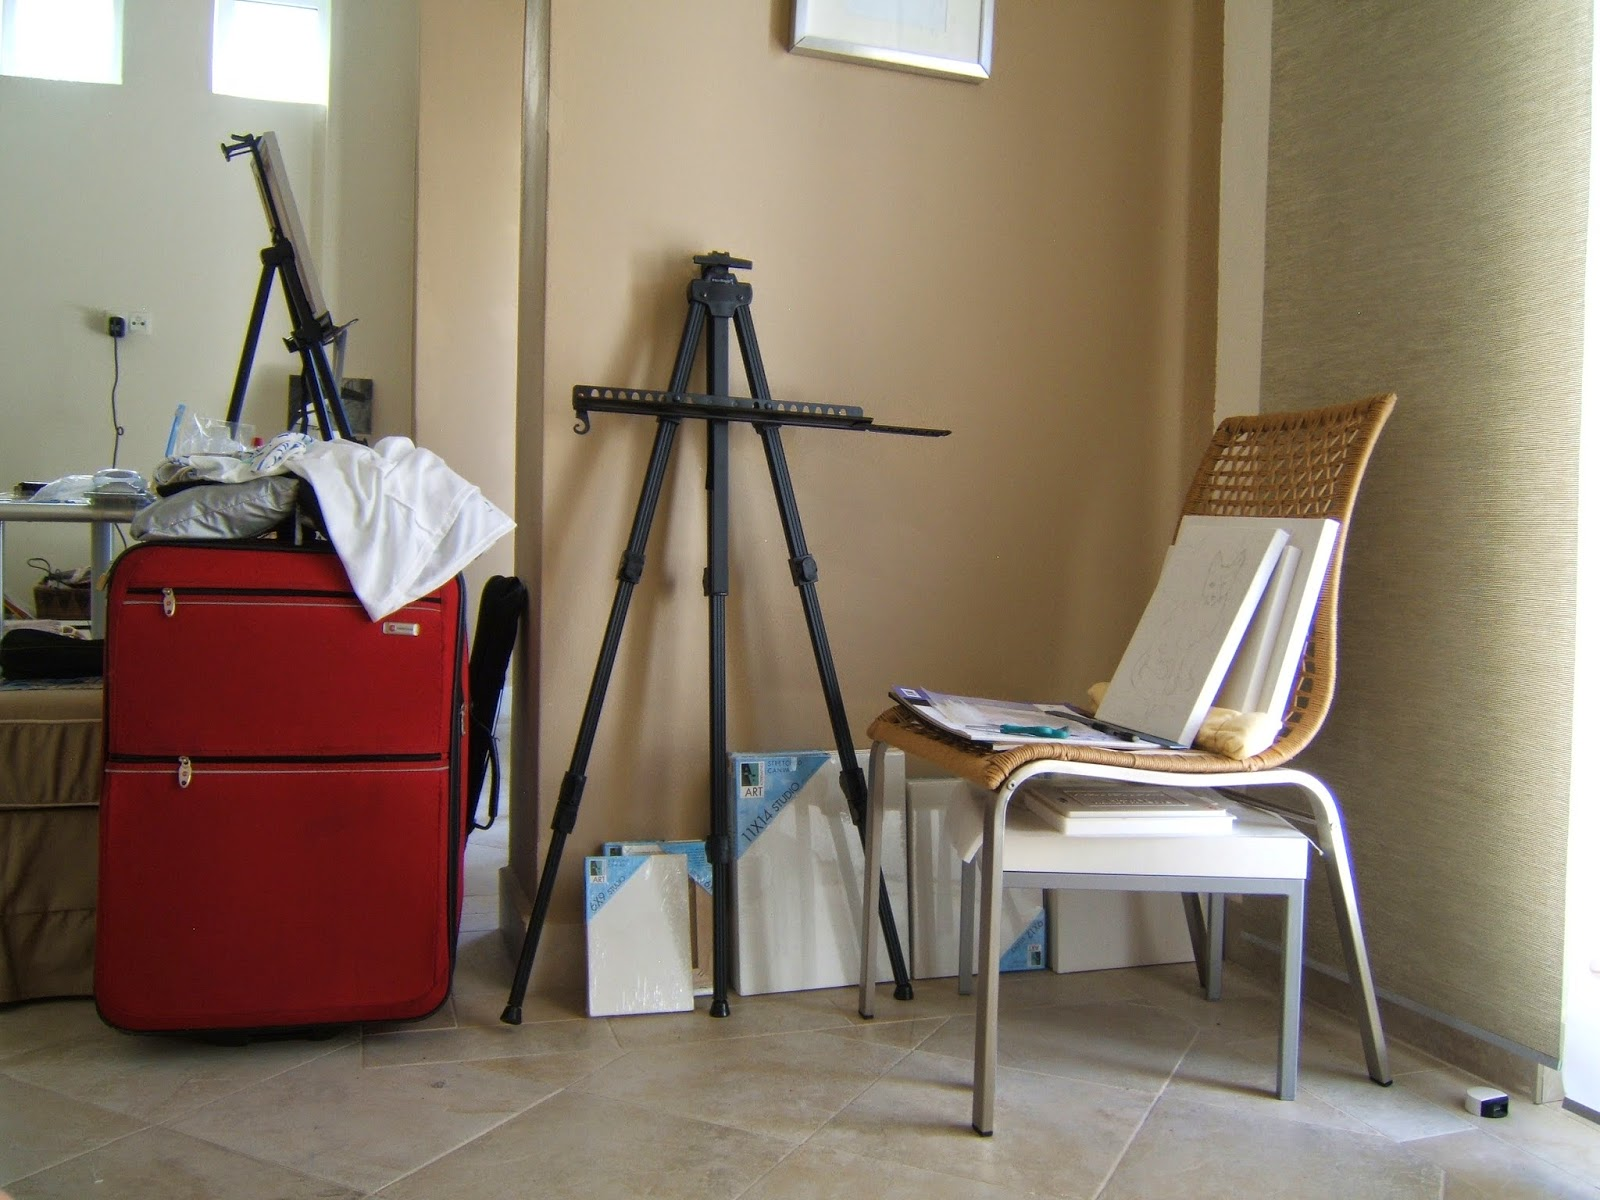 Portable Art Studio, packing to go painting for a month in Rhodes, Greece, fall 2008